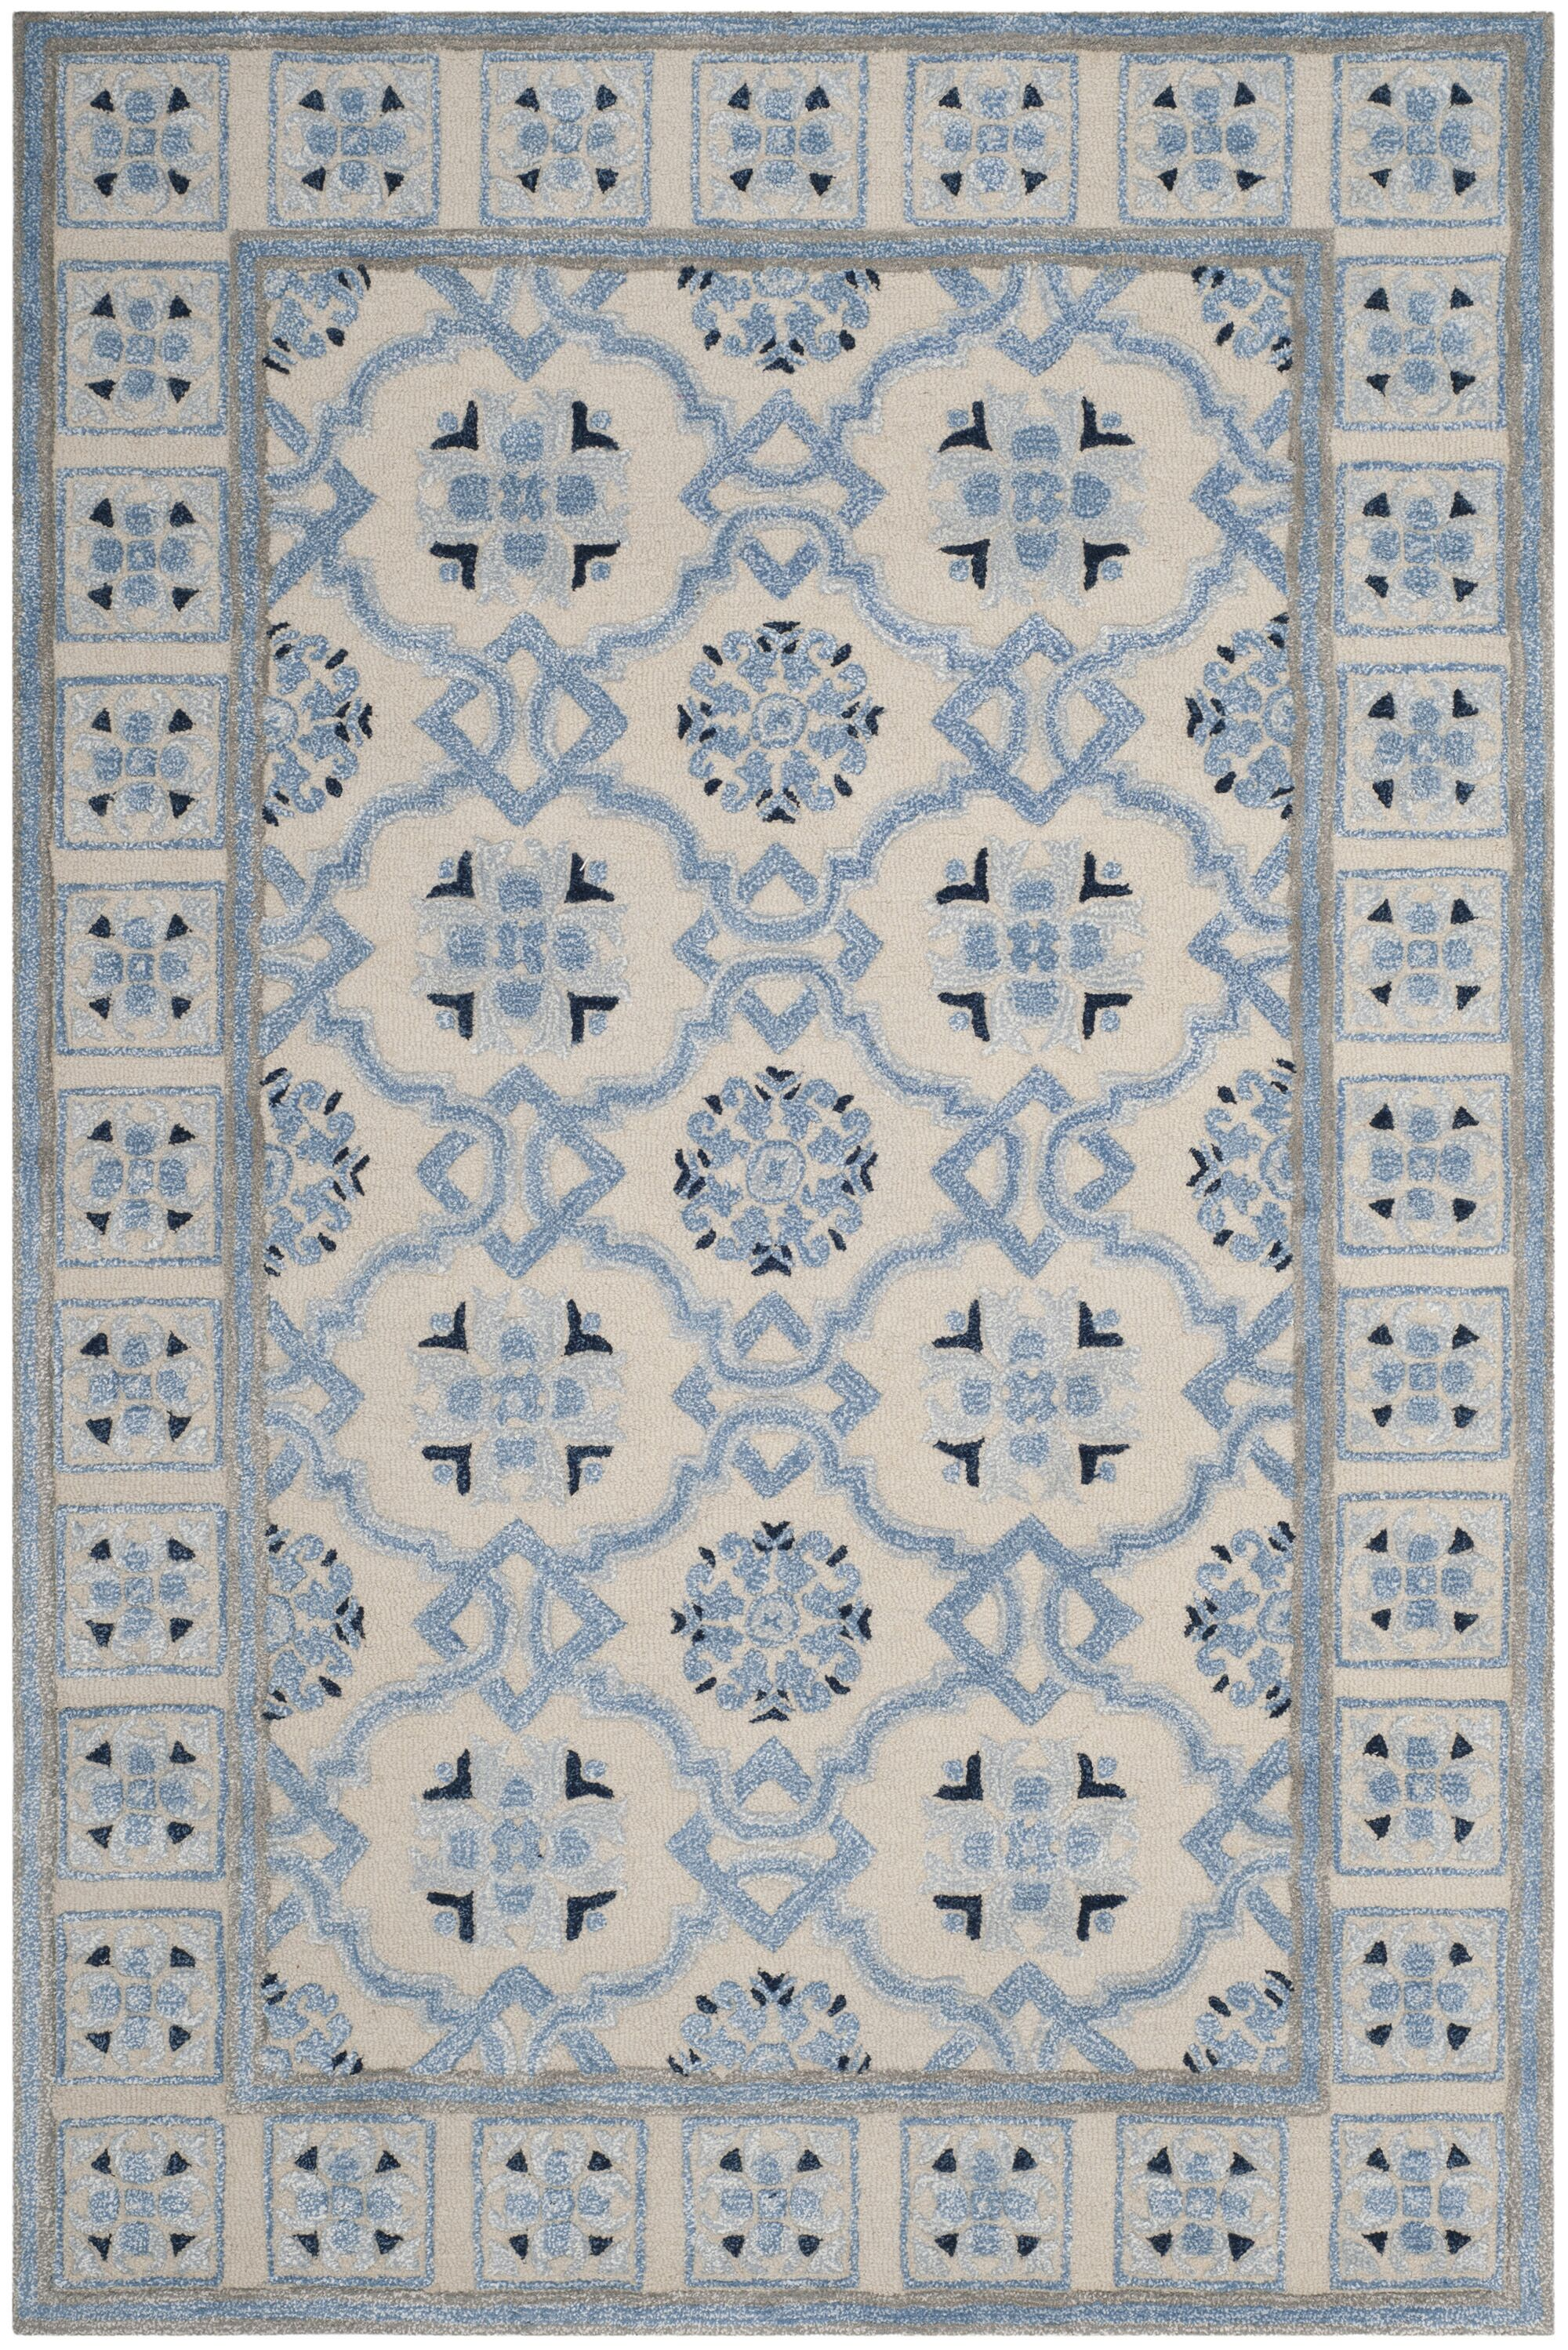 Perine Hand-Tufted Ivory Blue Area Rug Rug Size: Rectangle 6' x 9'